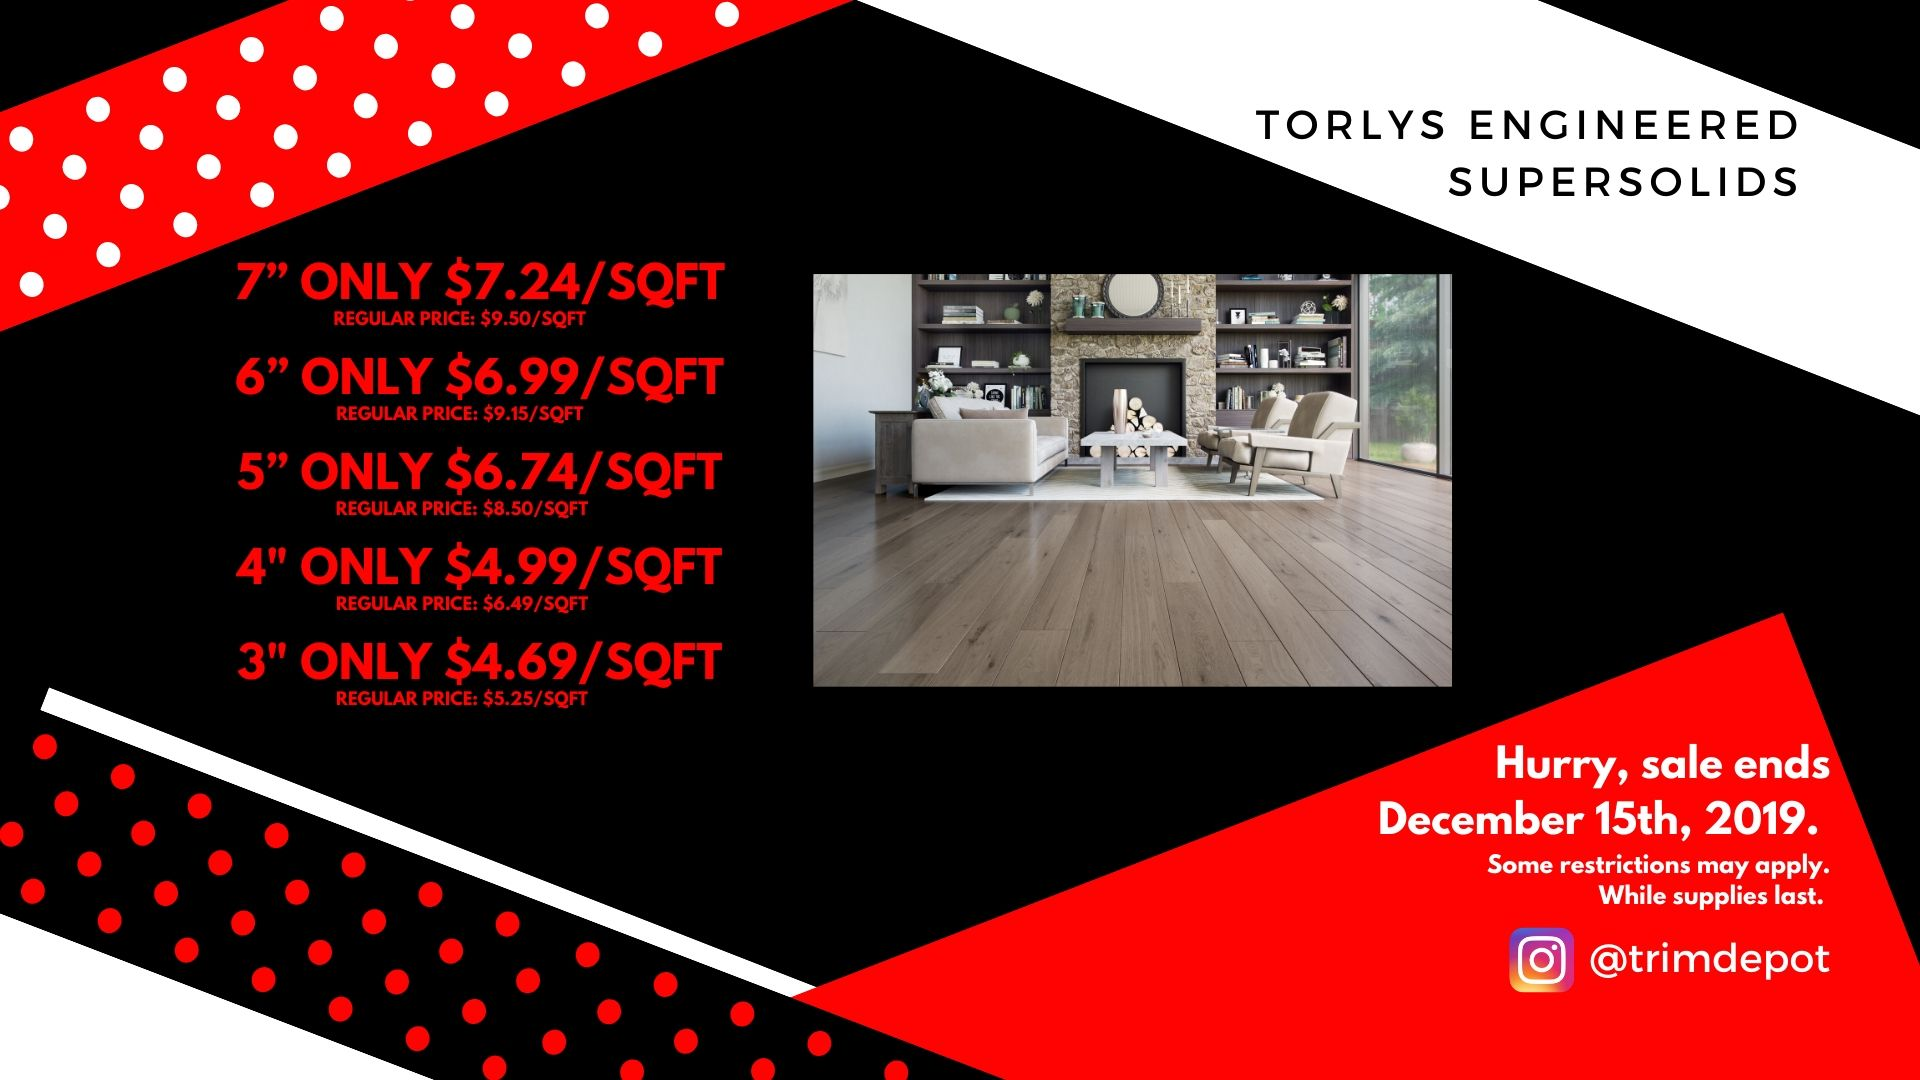 black-friday-torlys-engineered.jpg